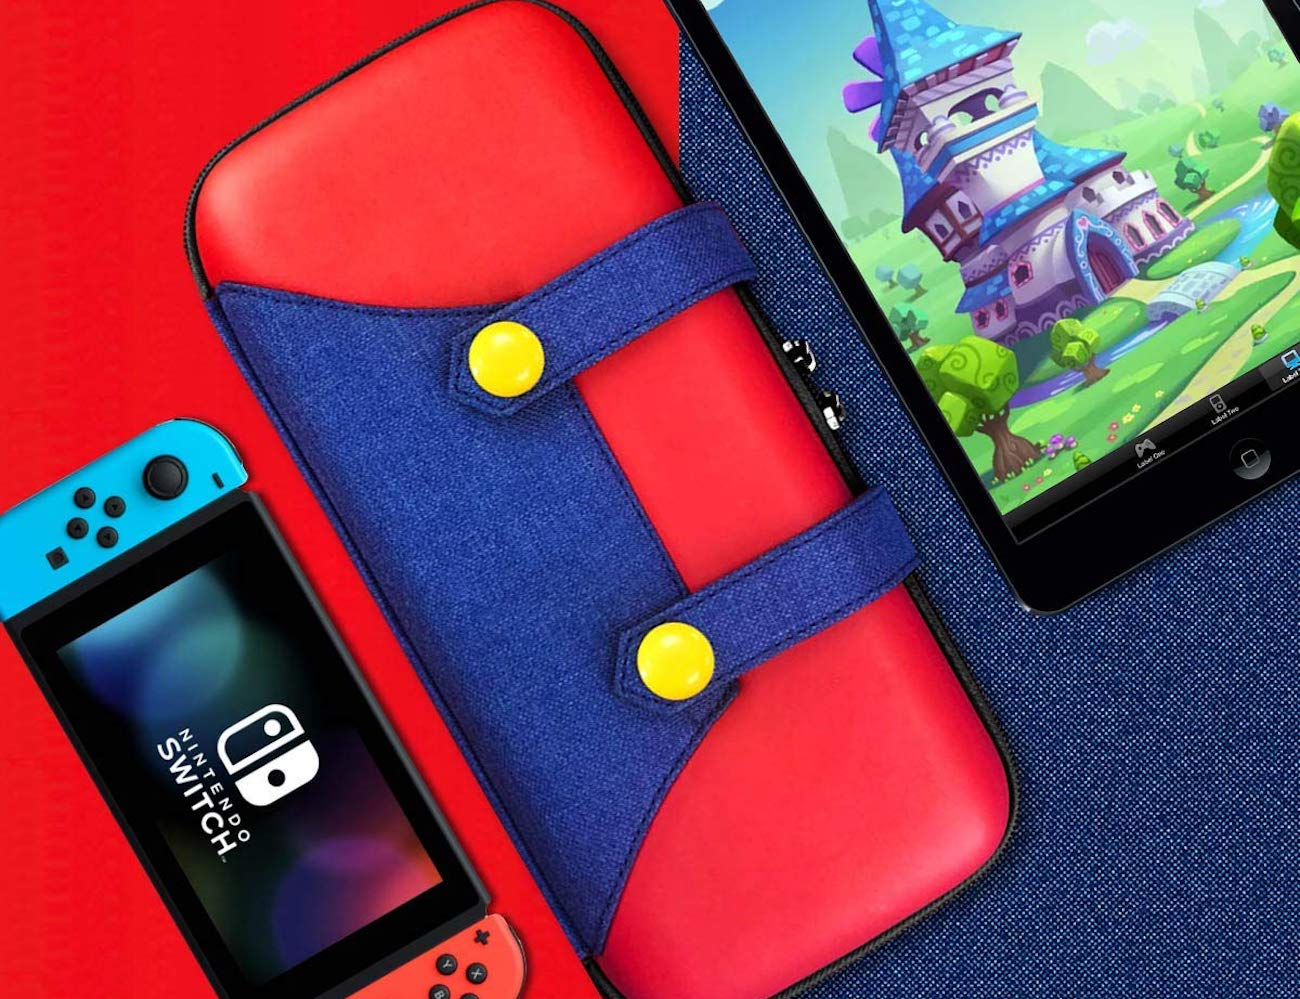 10 Must-have gaming accessories that will help you level up - Nintendo Switch Case 01